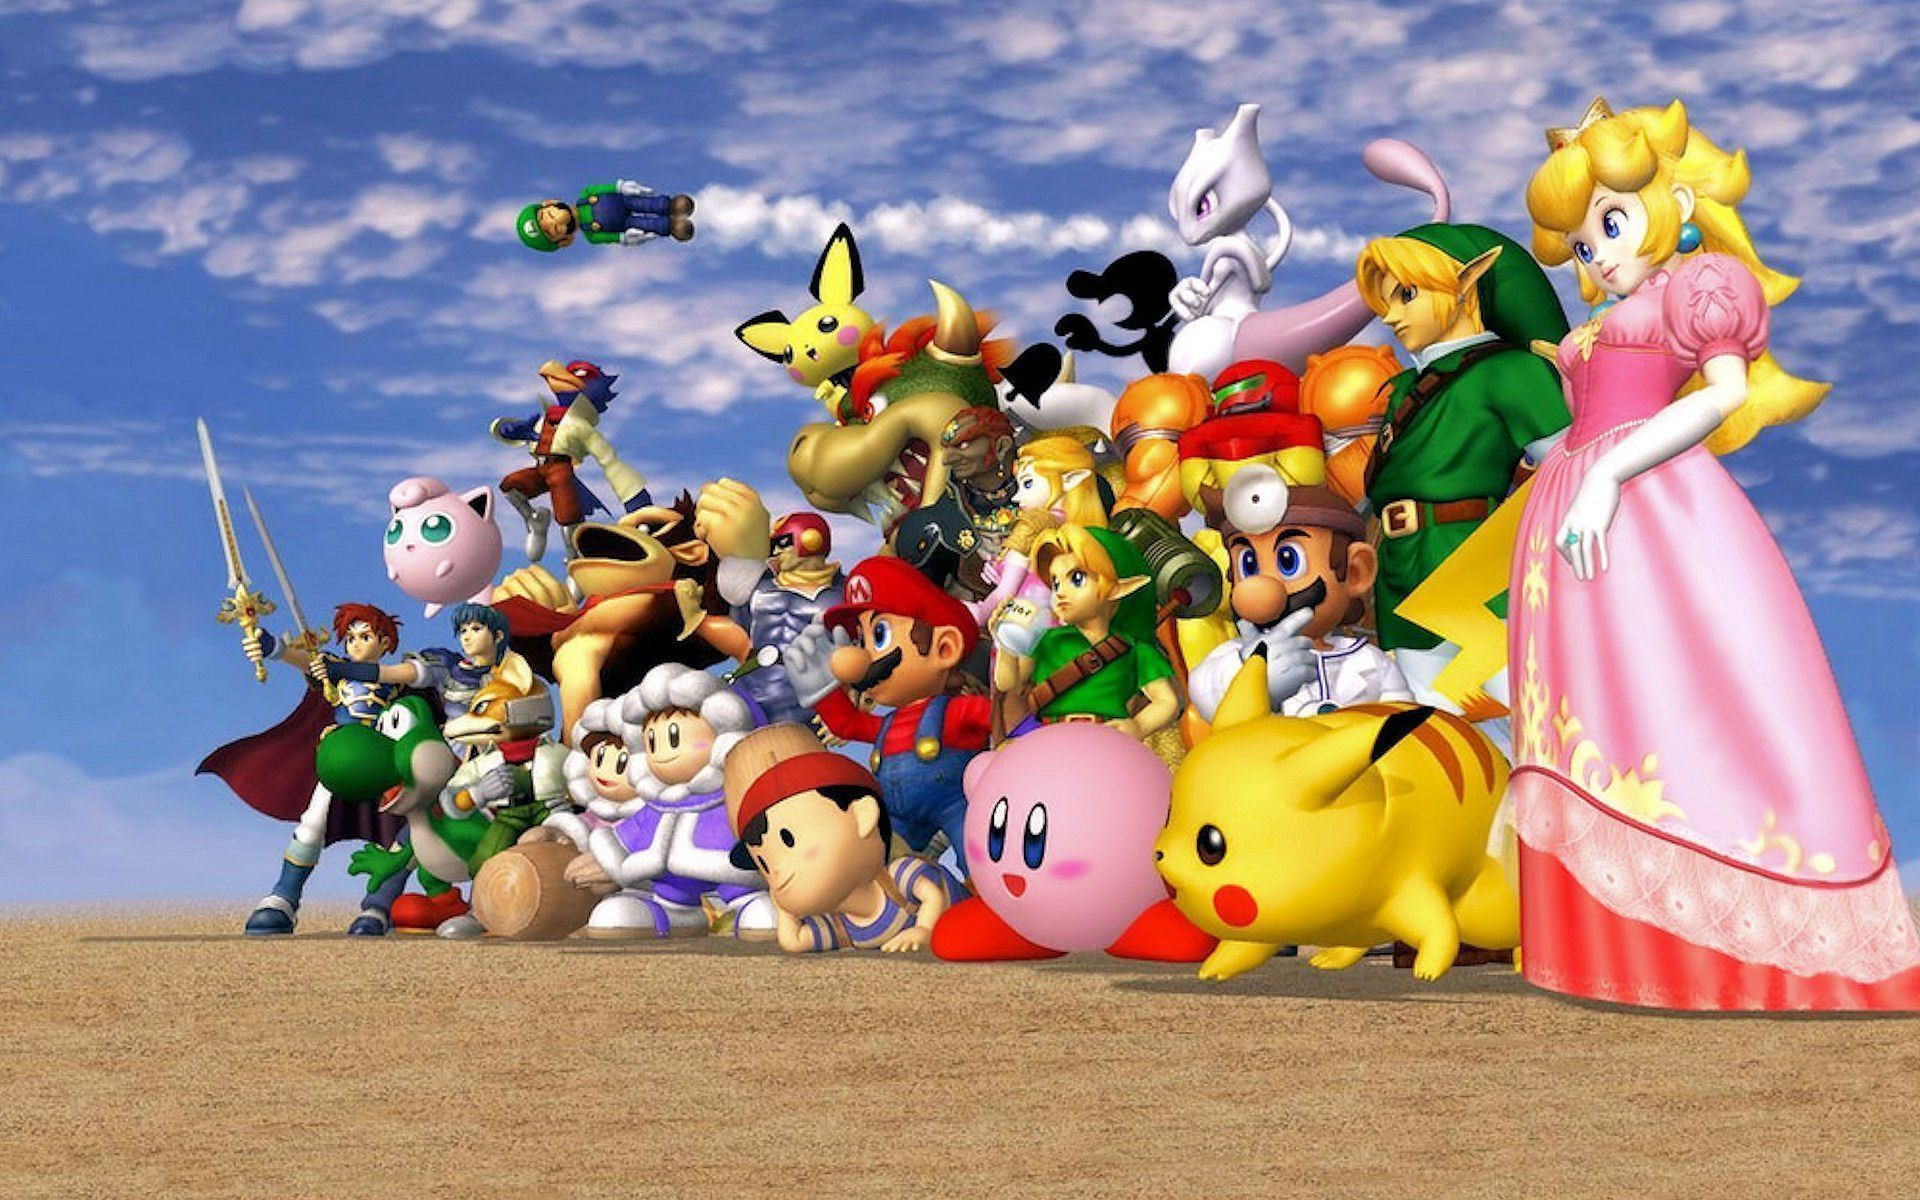 Super_Smash_Bros_Melee-fond